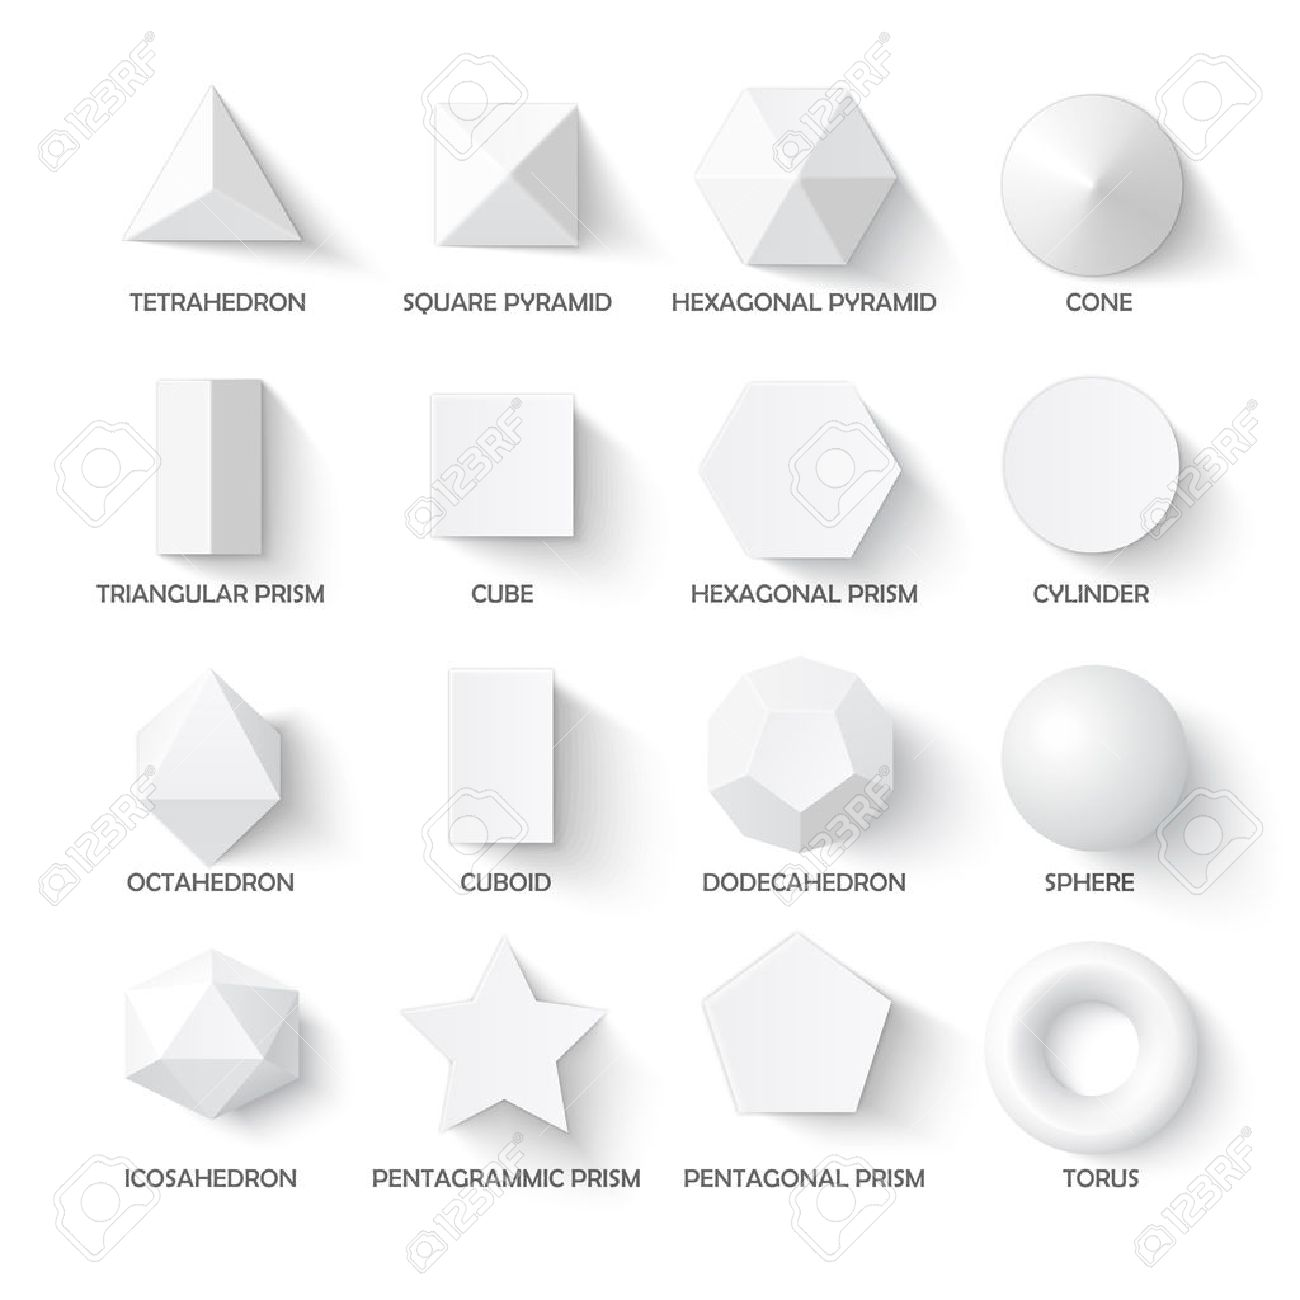 all basic 3d shapes template realistic with shadow perfect